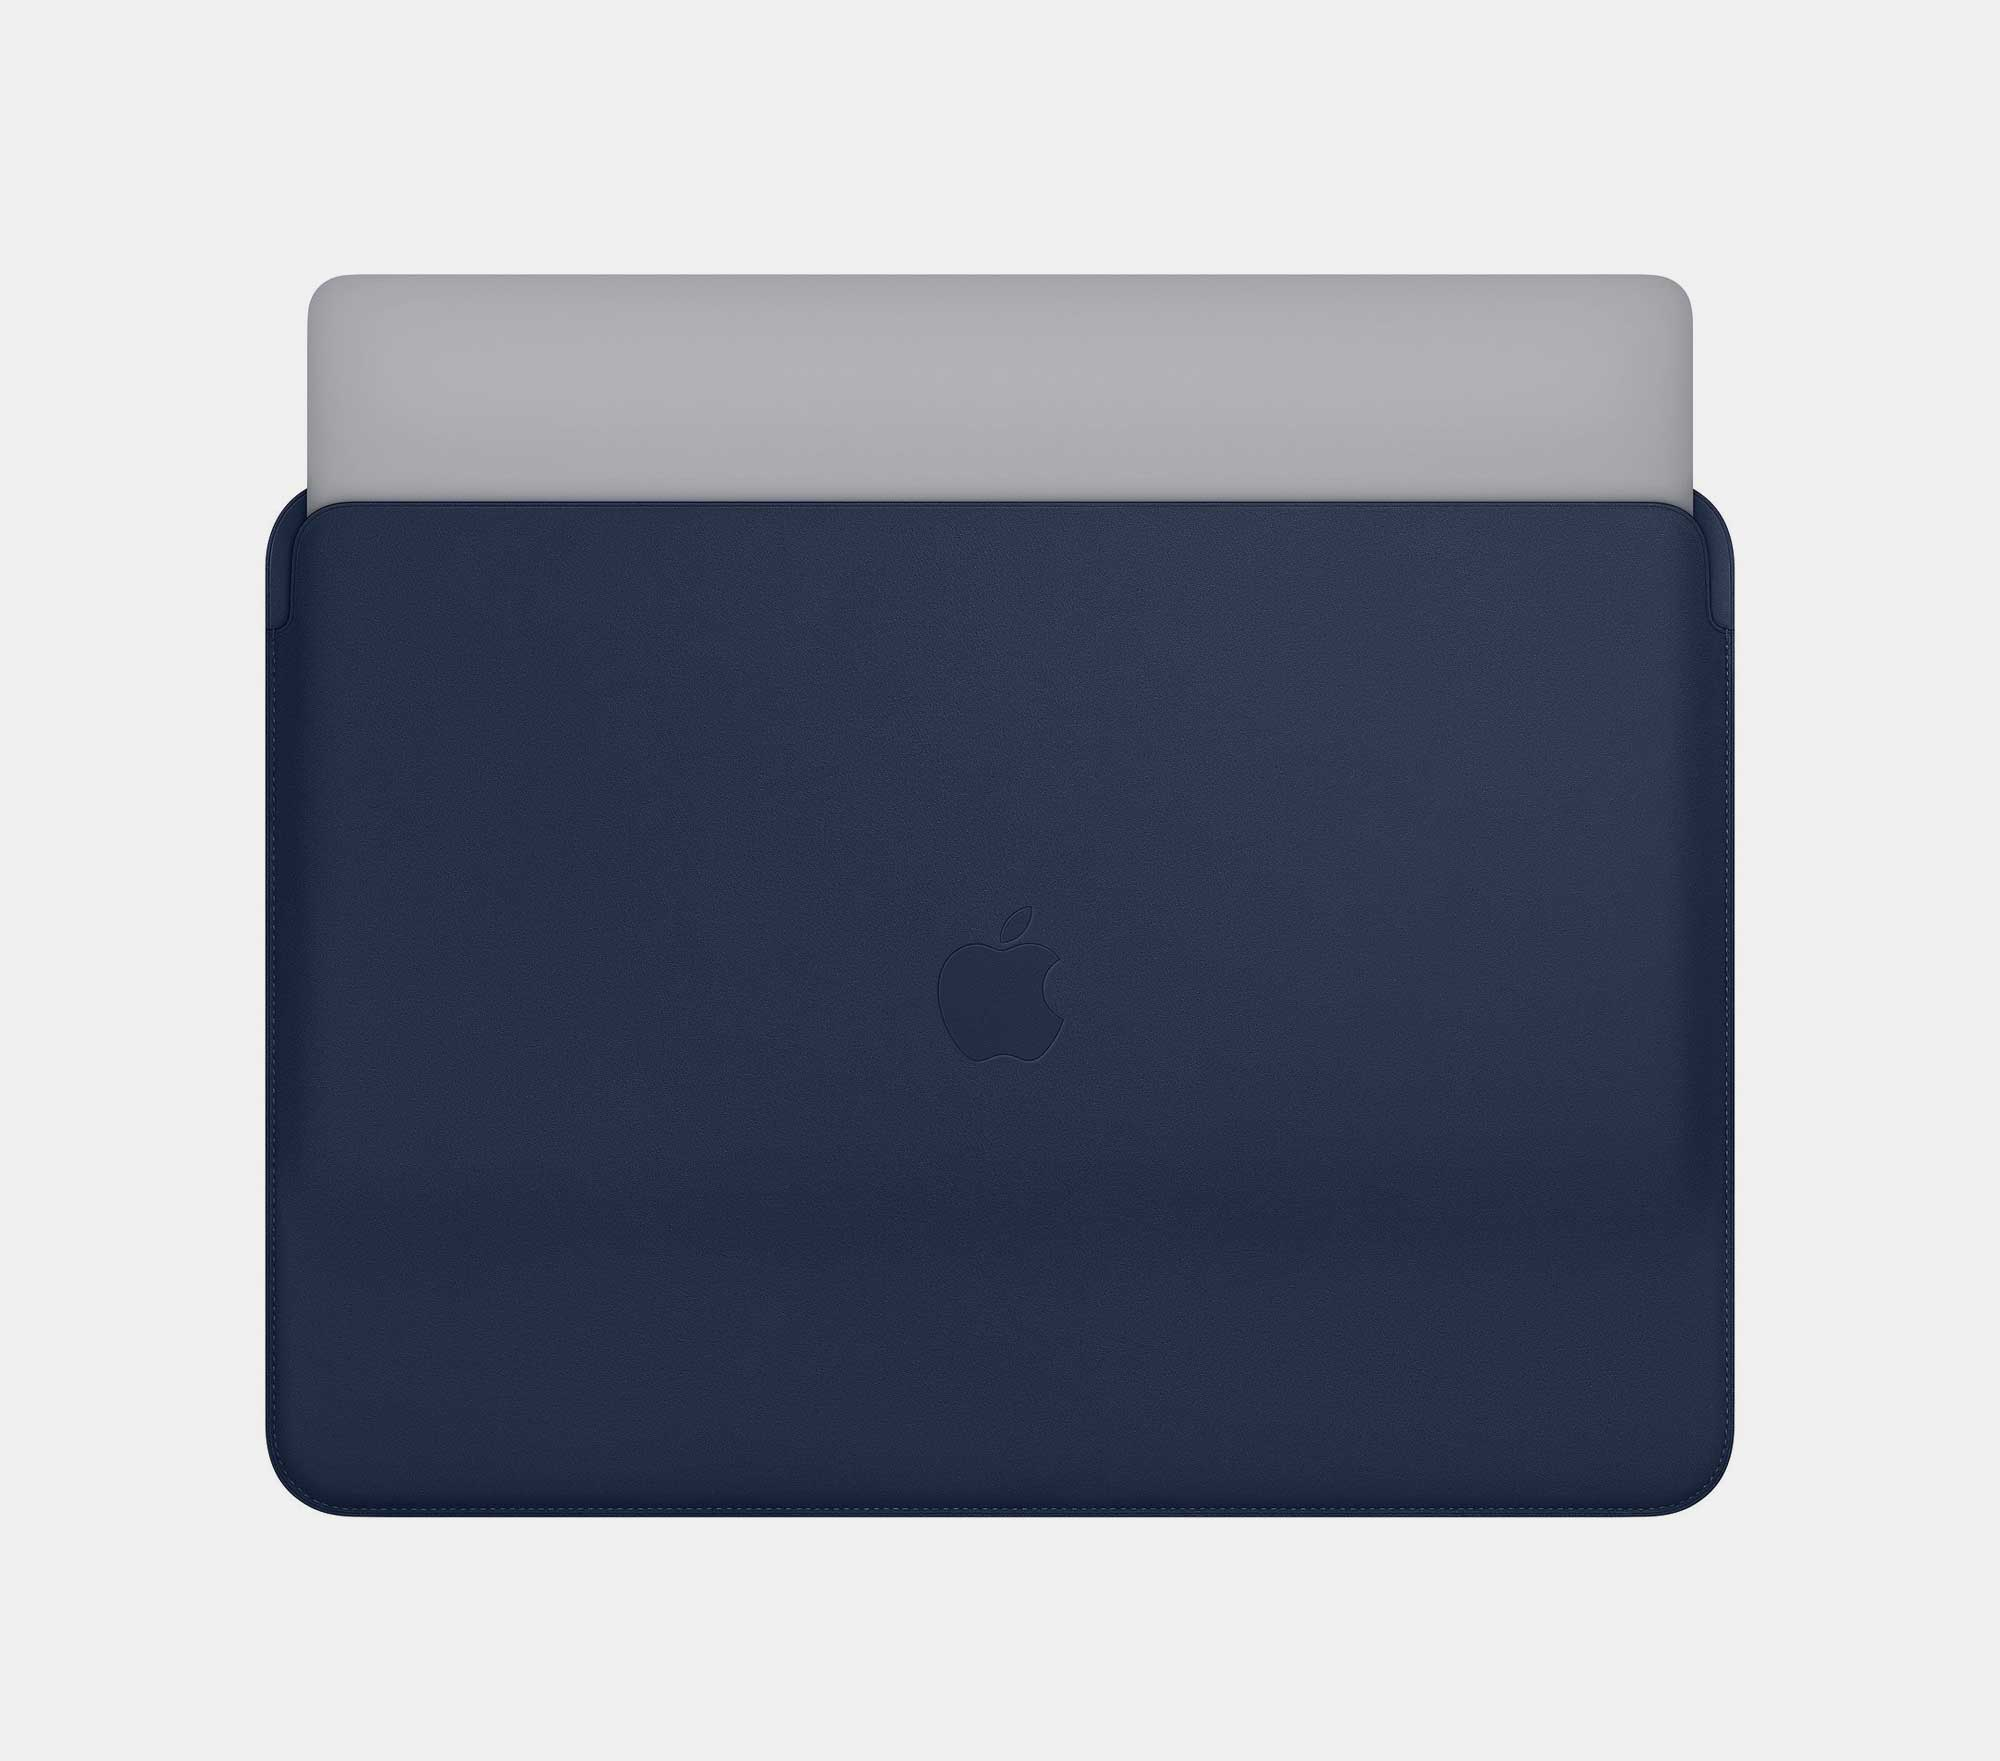 Midnight Blue Apple Leather Sleeve with new Space Grey MacBook Pro